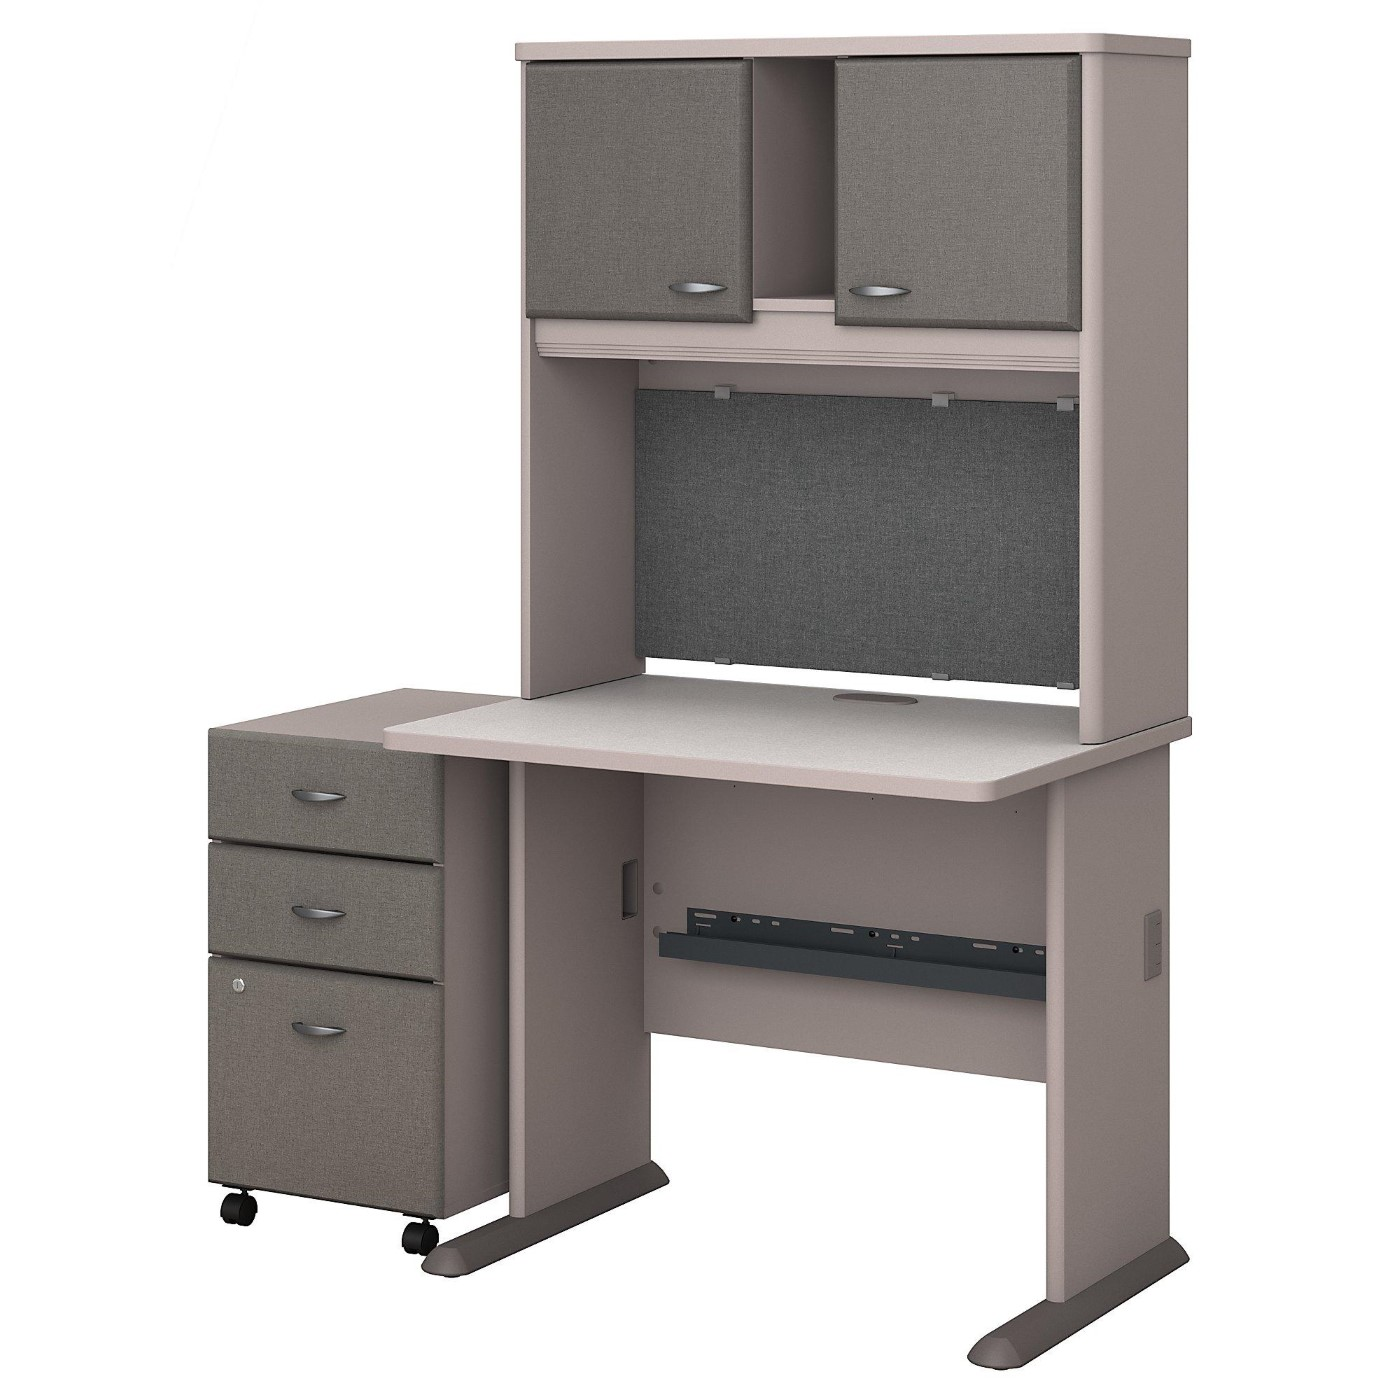 BUSH BUSINESS FURNITURE SERIES A 36W DESK WITH HUTCH AND MOBILE FILE CABINET. FREE SHIPPING.